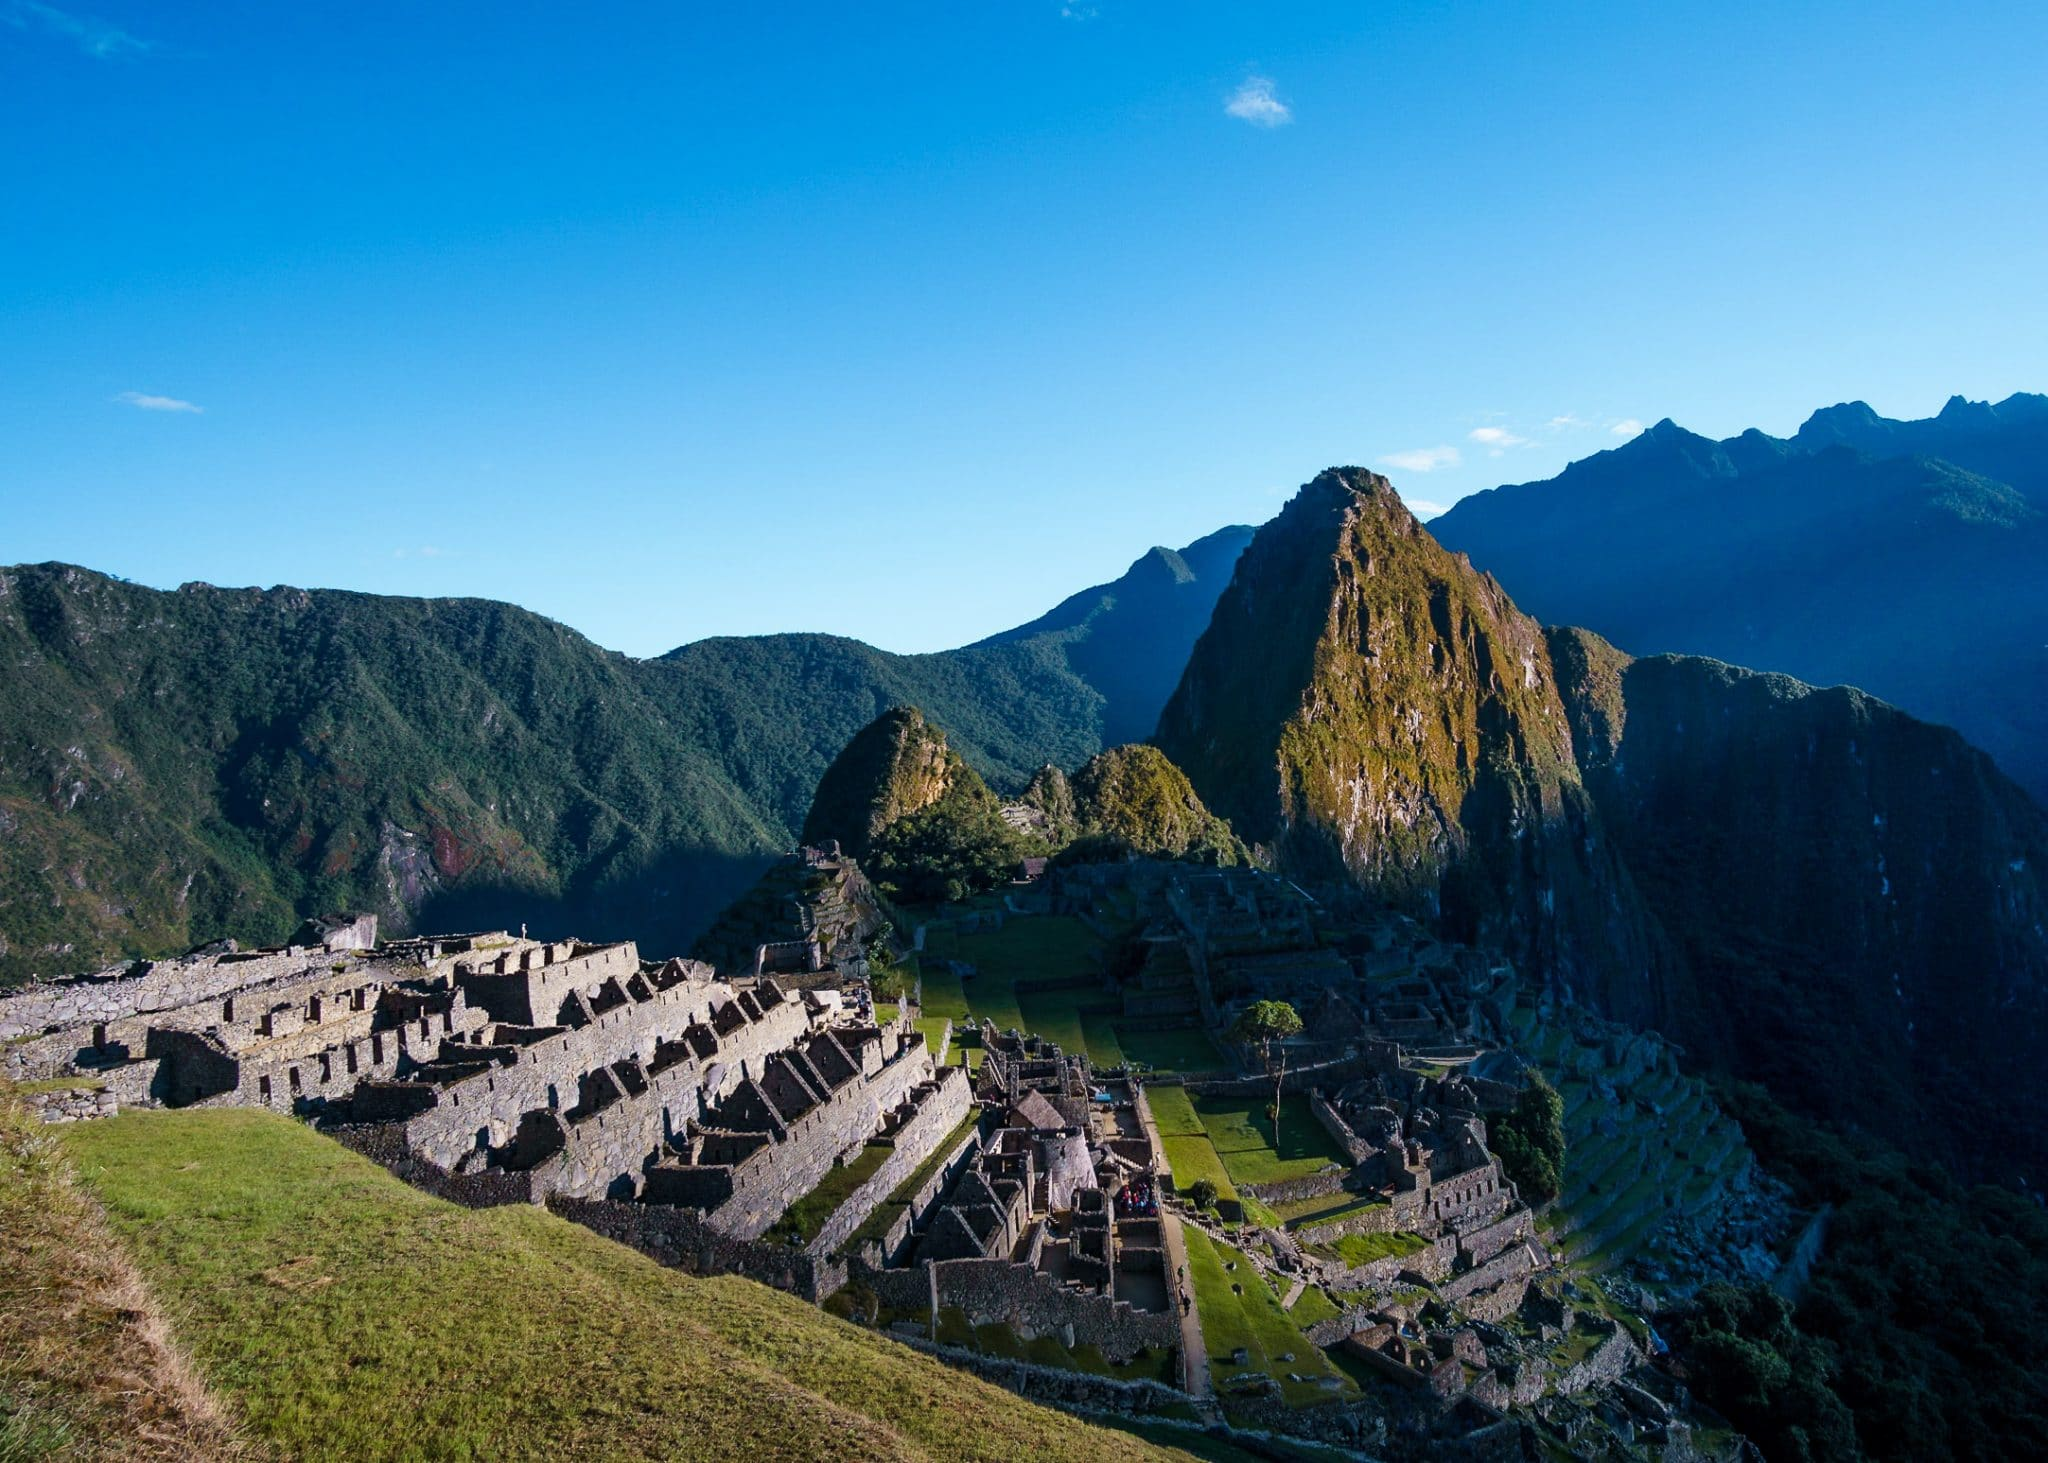 First Light at Machu Picchu